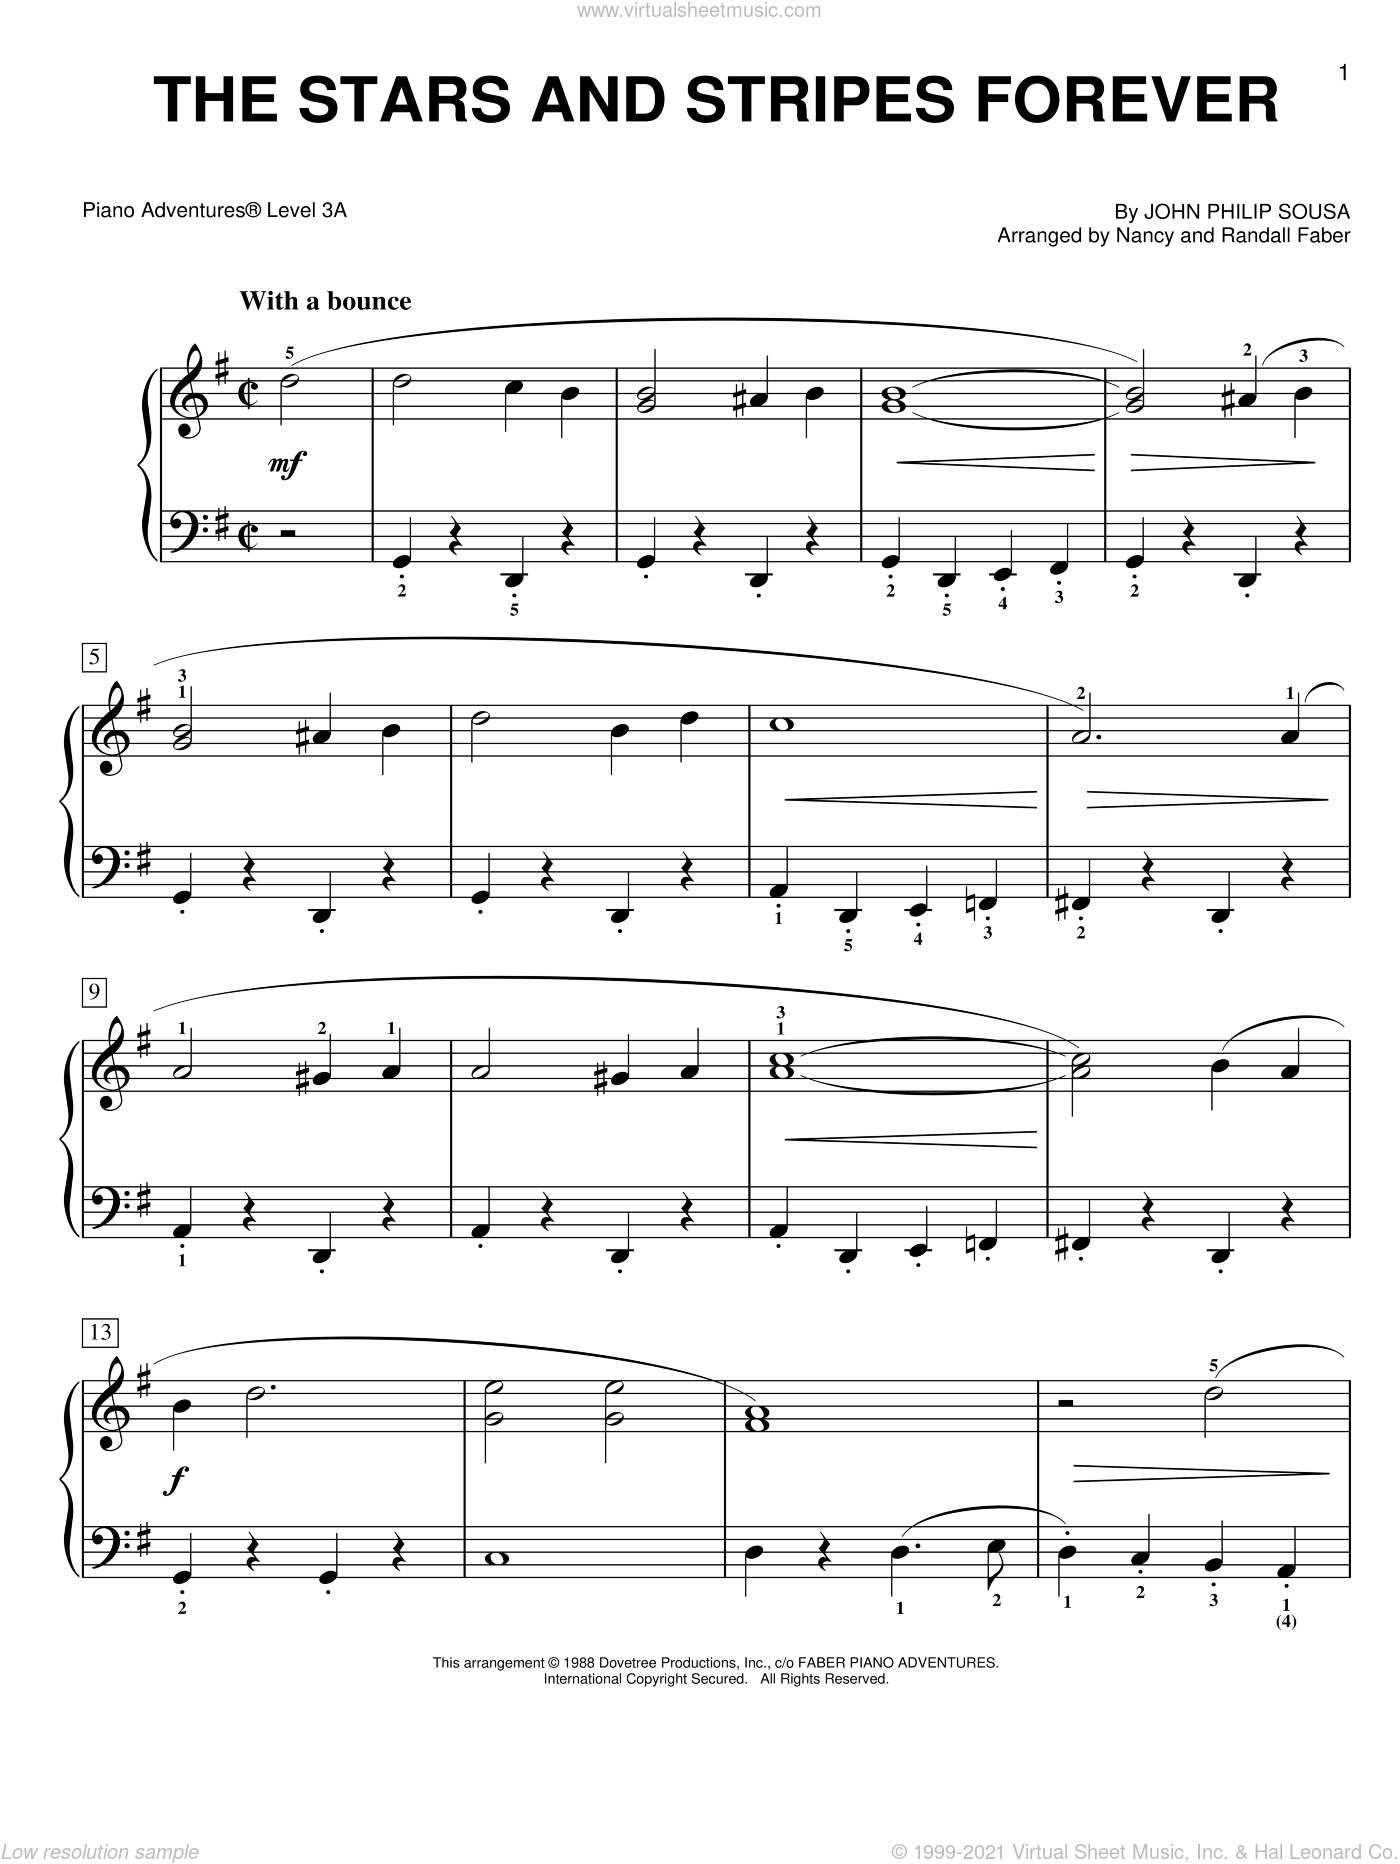 The Stars and Stripes Forever sheet music for piano solo by John Philip Sousa and Nancy and Randall Faber, intermediate/advanced. Score Image Preview.